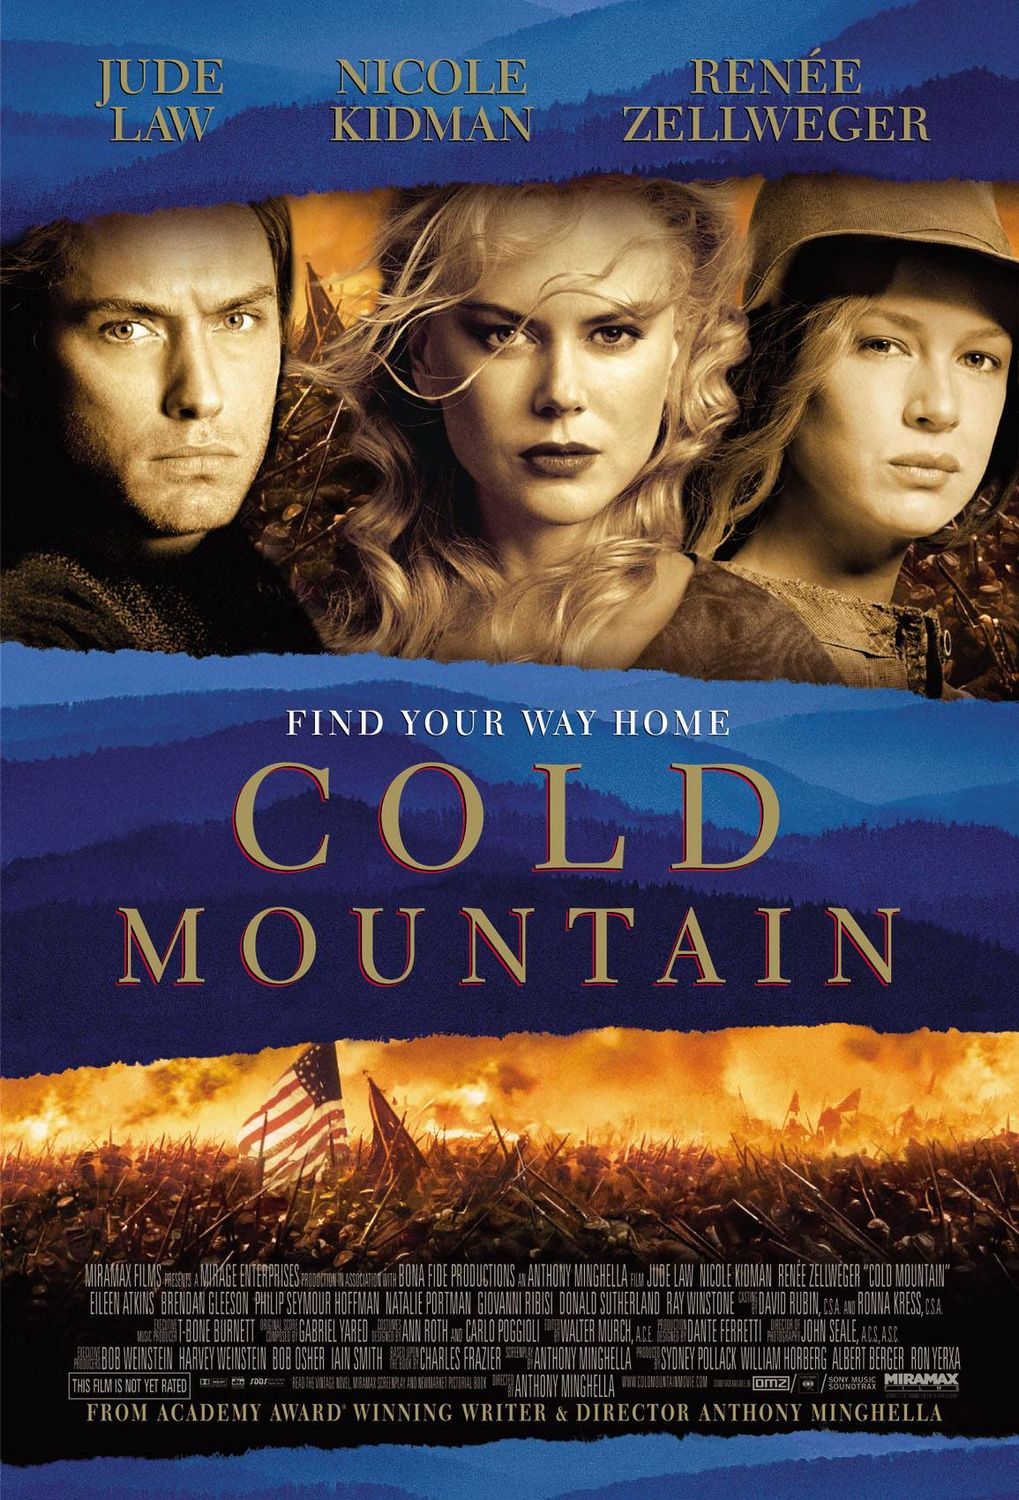 Friday Night at the Movies – Cold Mountain